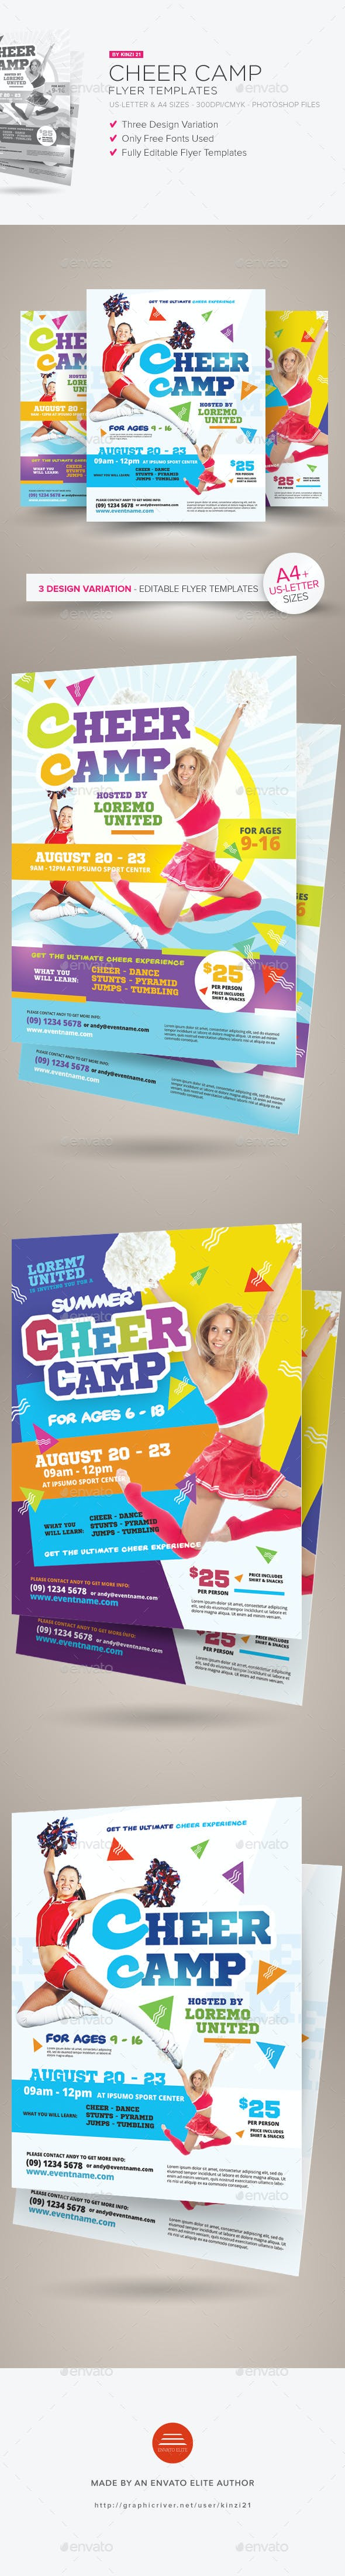 cheer camp flyer templates by kinzi21 graphicriver